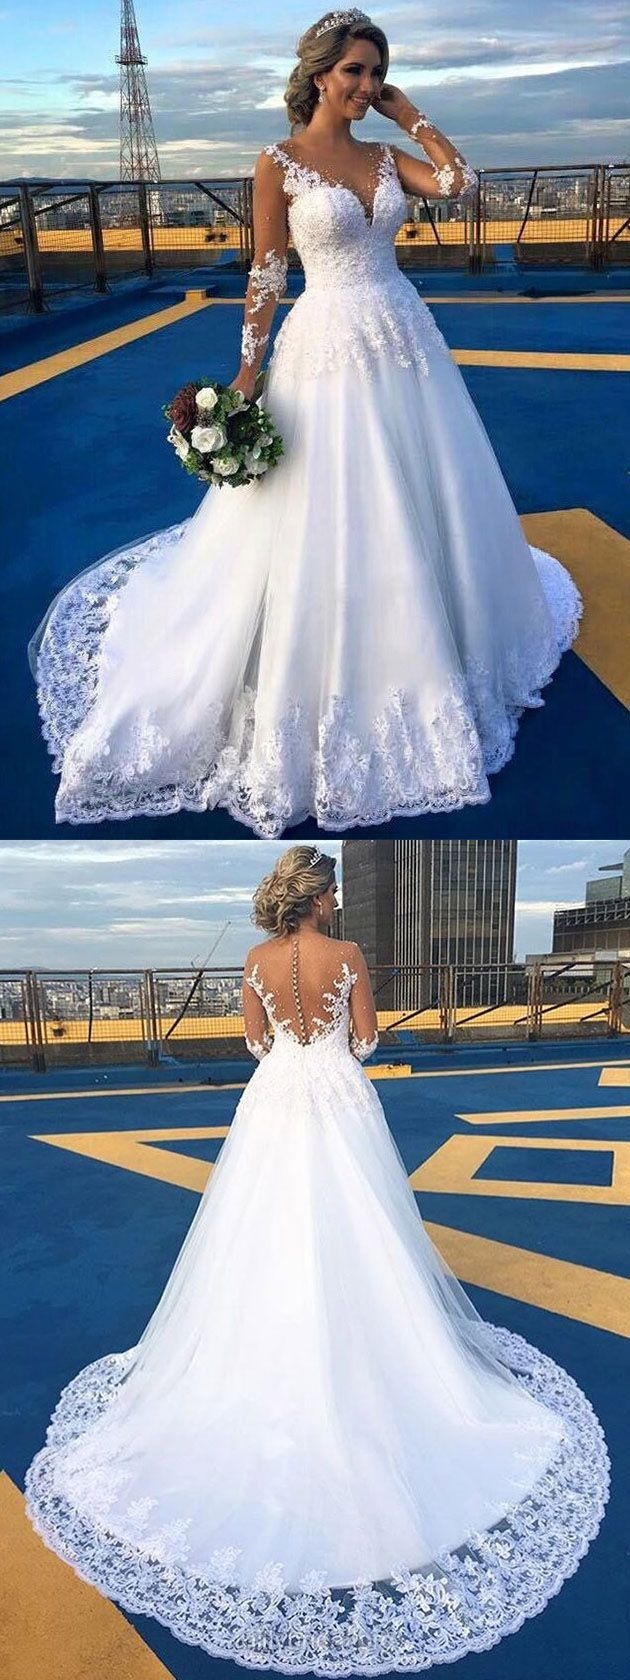 Lace wedding dresses long sleeve white bridal gowns alinemodest